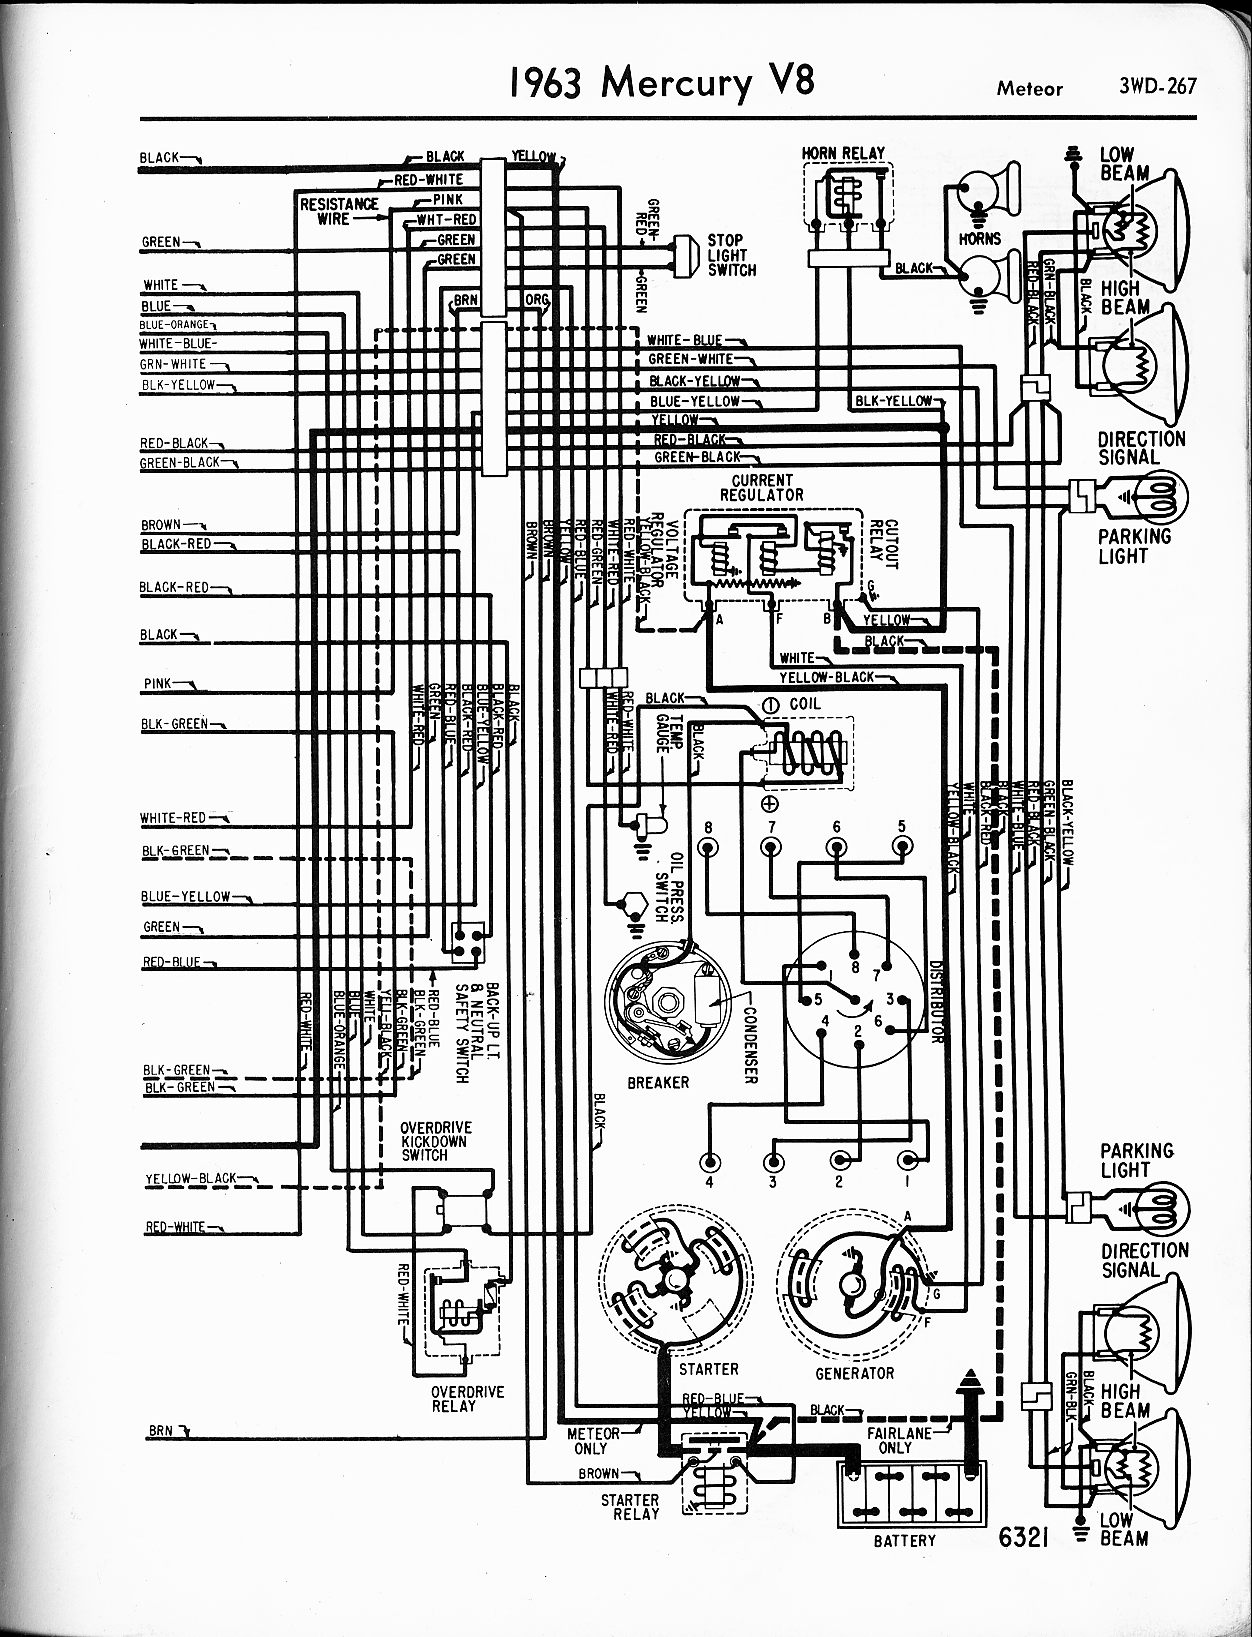 MWire5765 267 mercury wiring diagrams the old car manual project 1963 mercury comet wiring diagram at soozxer.org